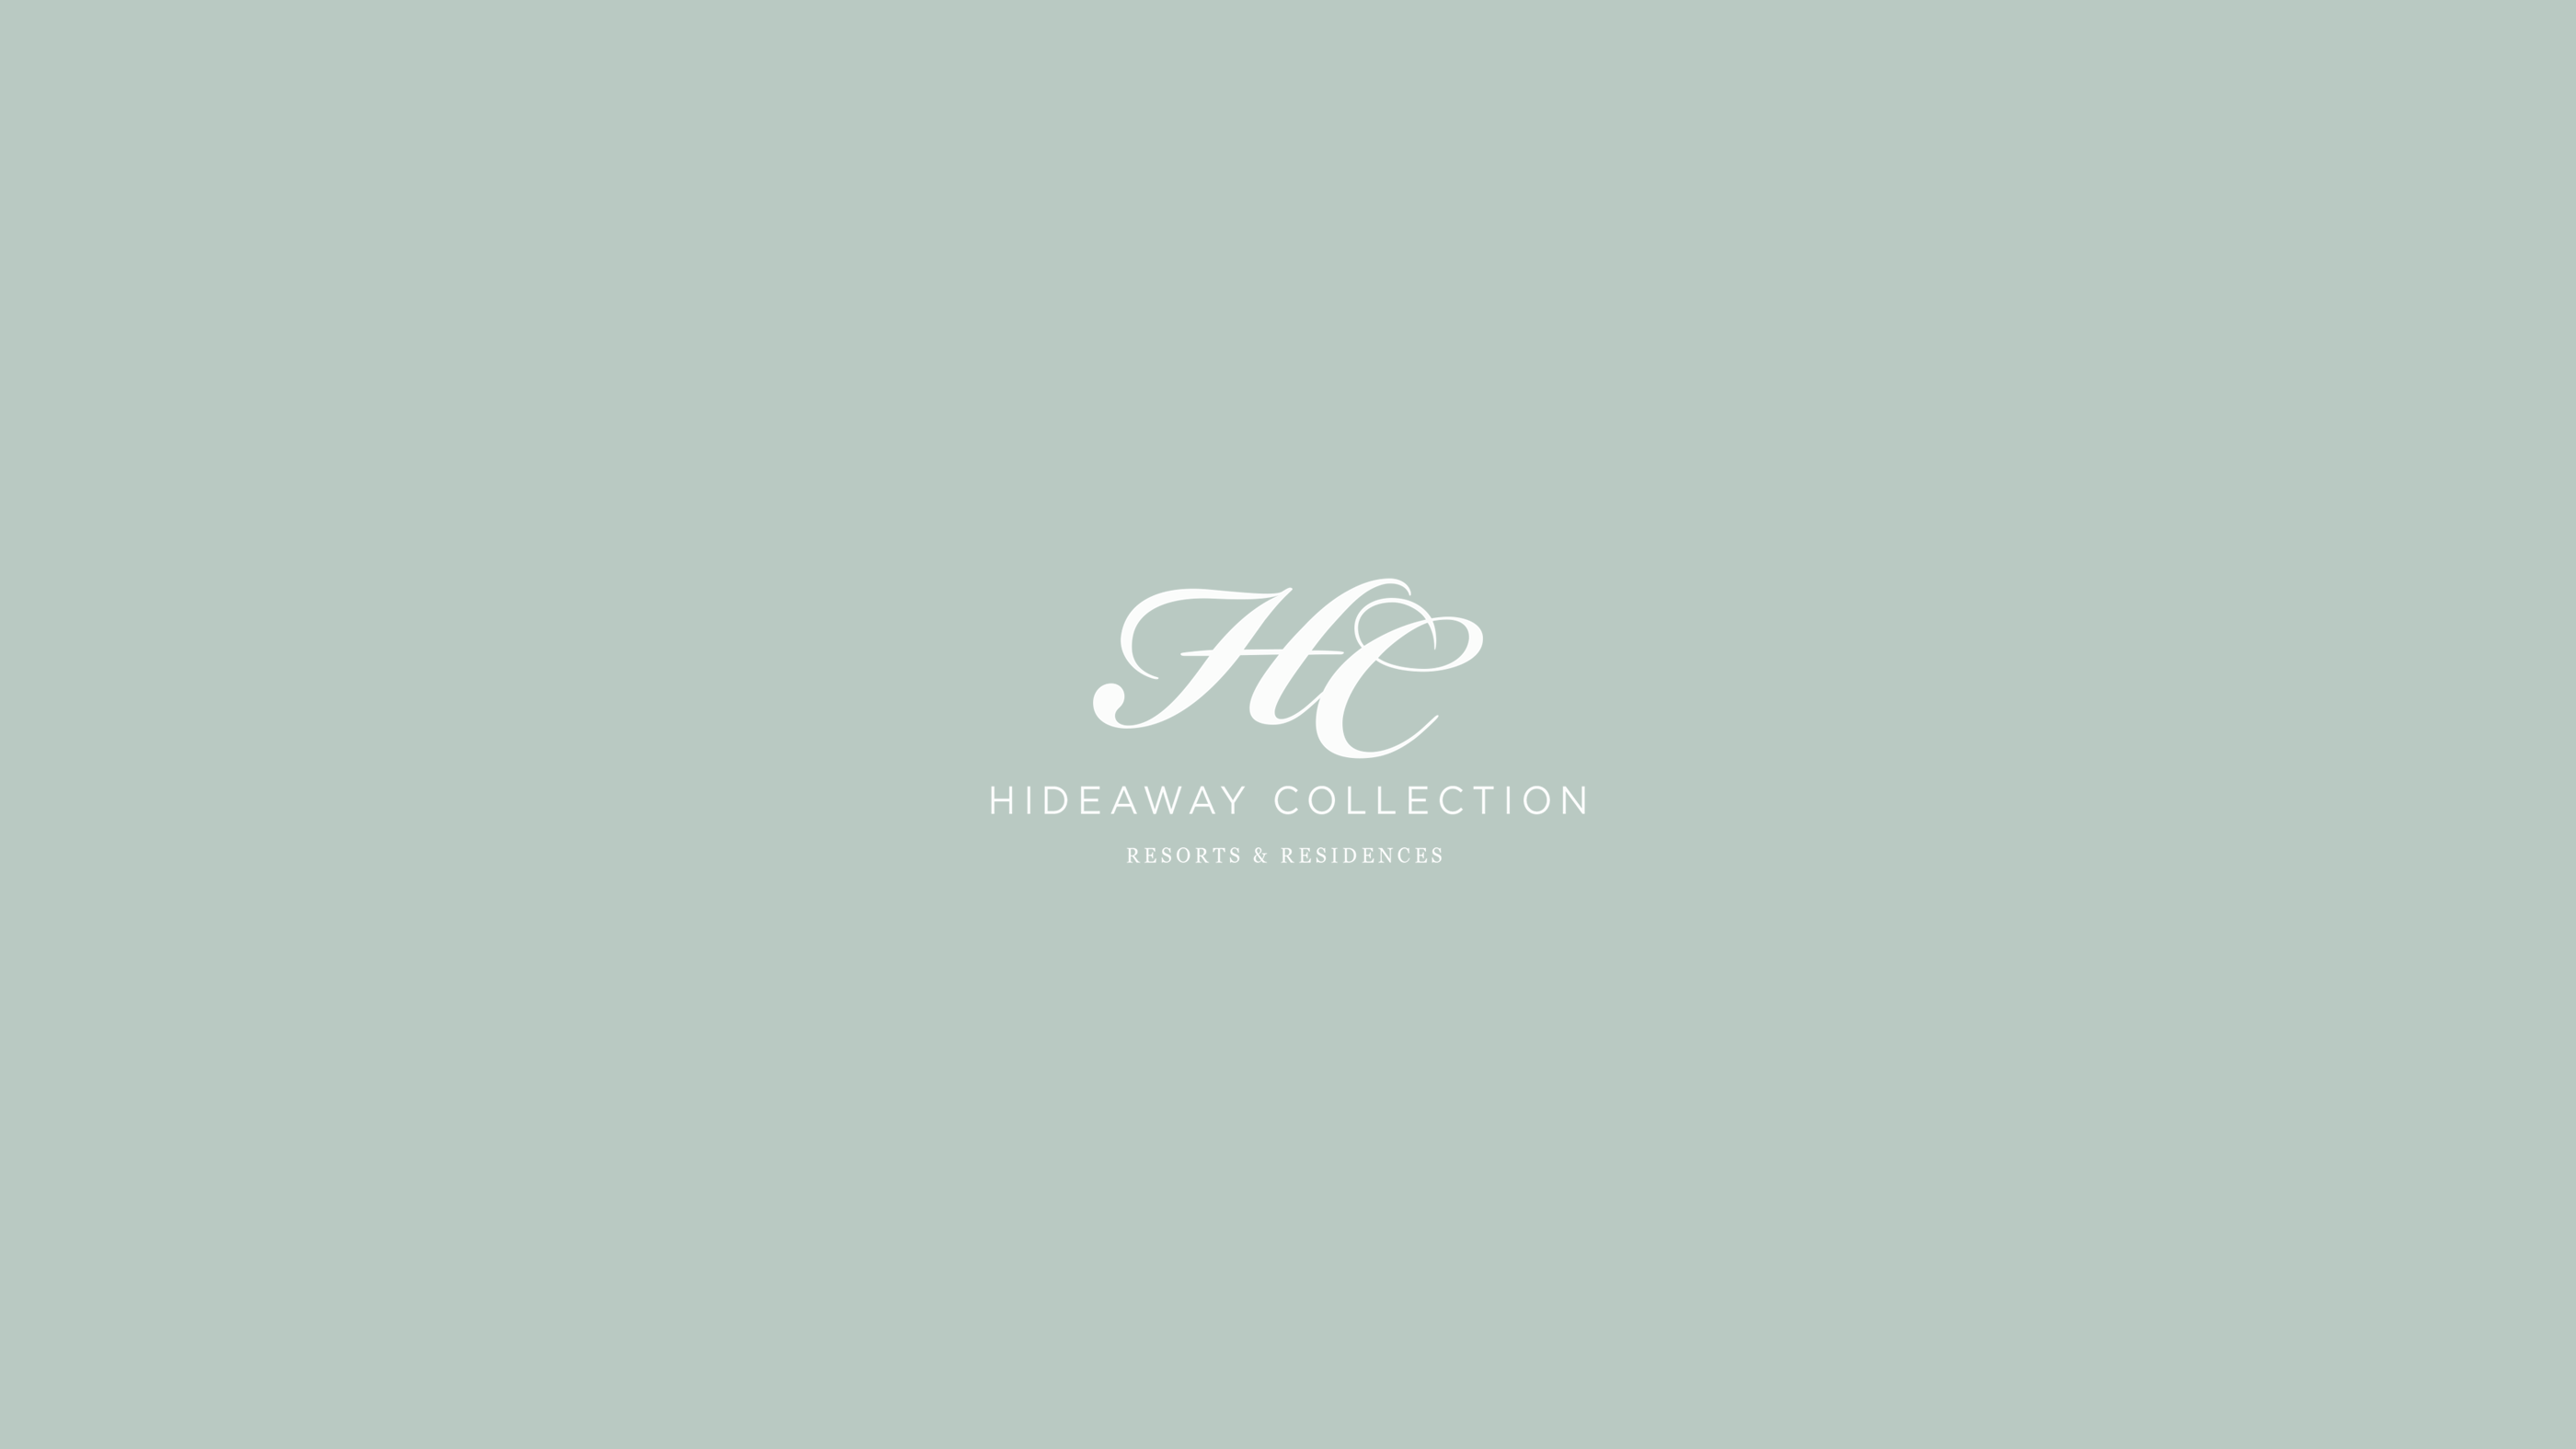 Luxury brand identity design